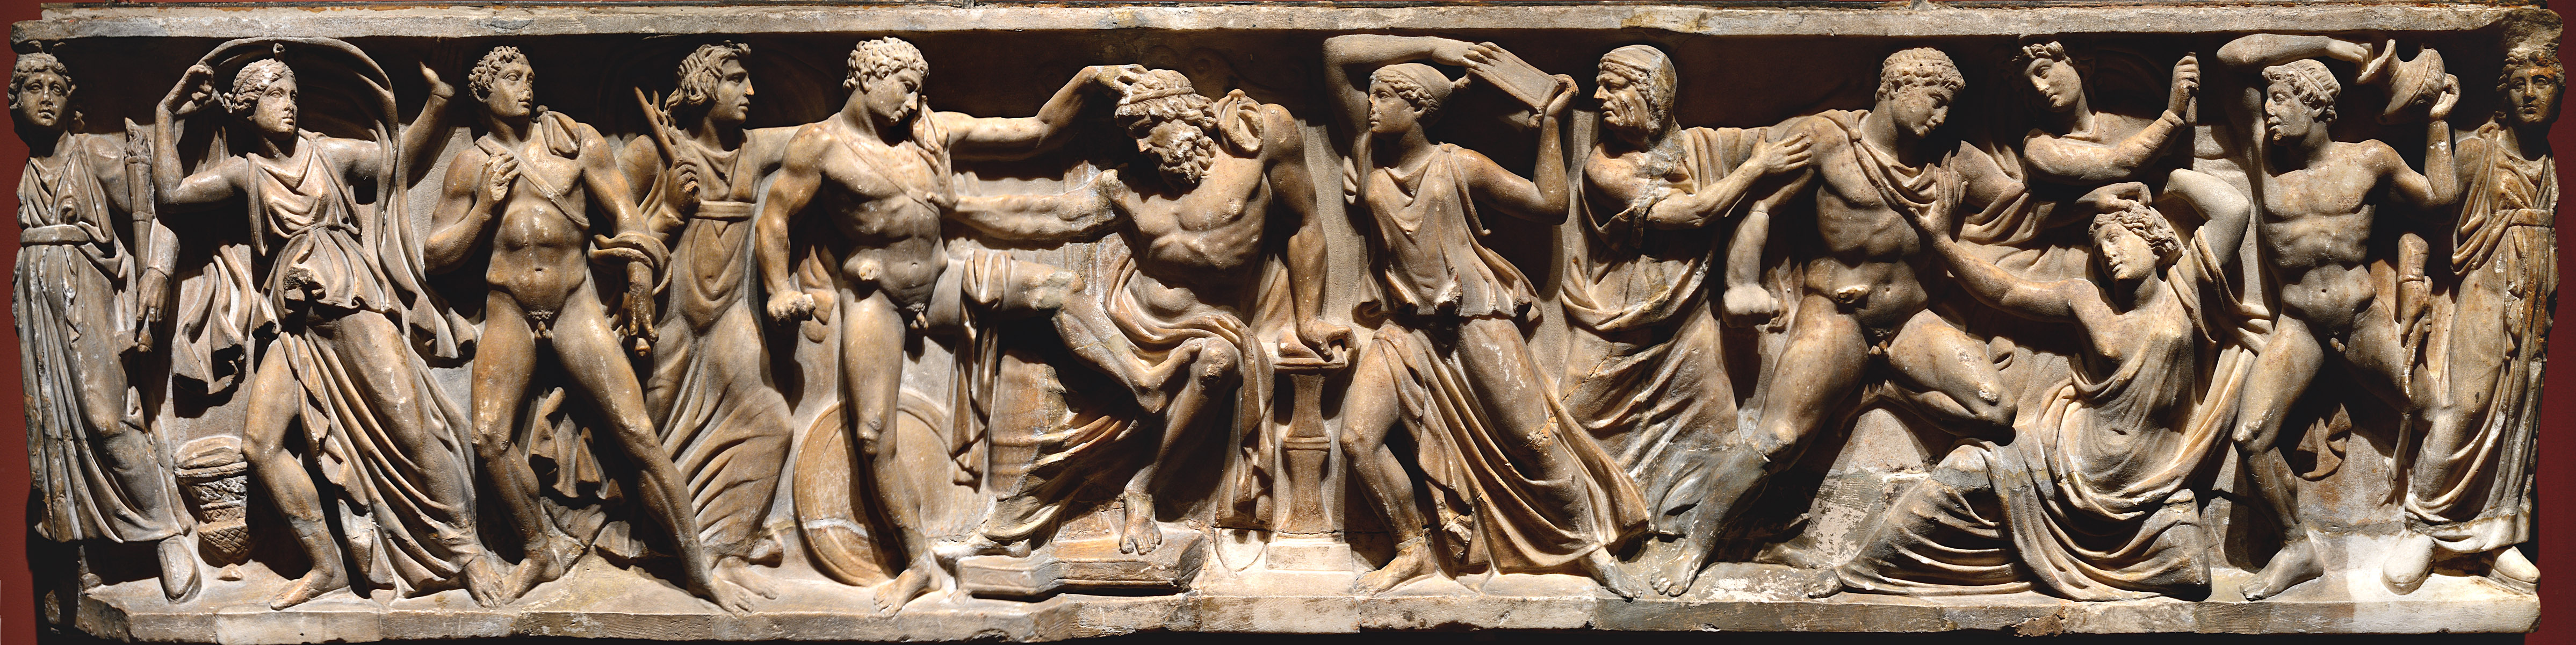 Orestes slaying Aegisthus and Clytemnestra. Frontal relief of a sarcophagus. Rome. Marble. Ca. 150 CE.  Inv. No. A 461. Saint Petersburg, The State Hermitage Museum